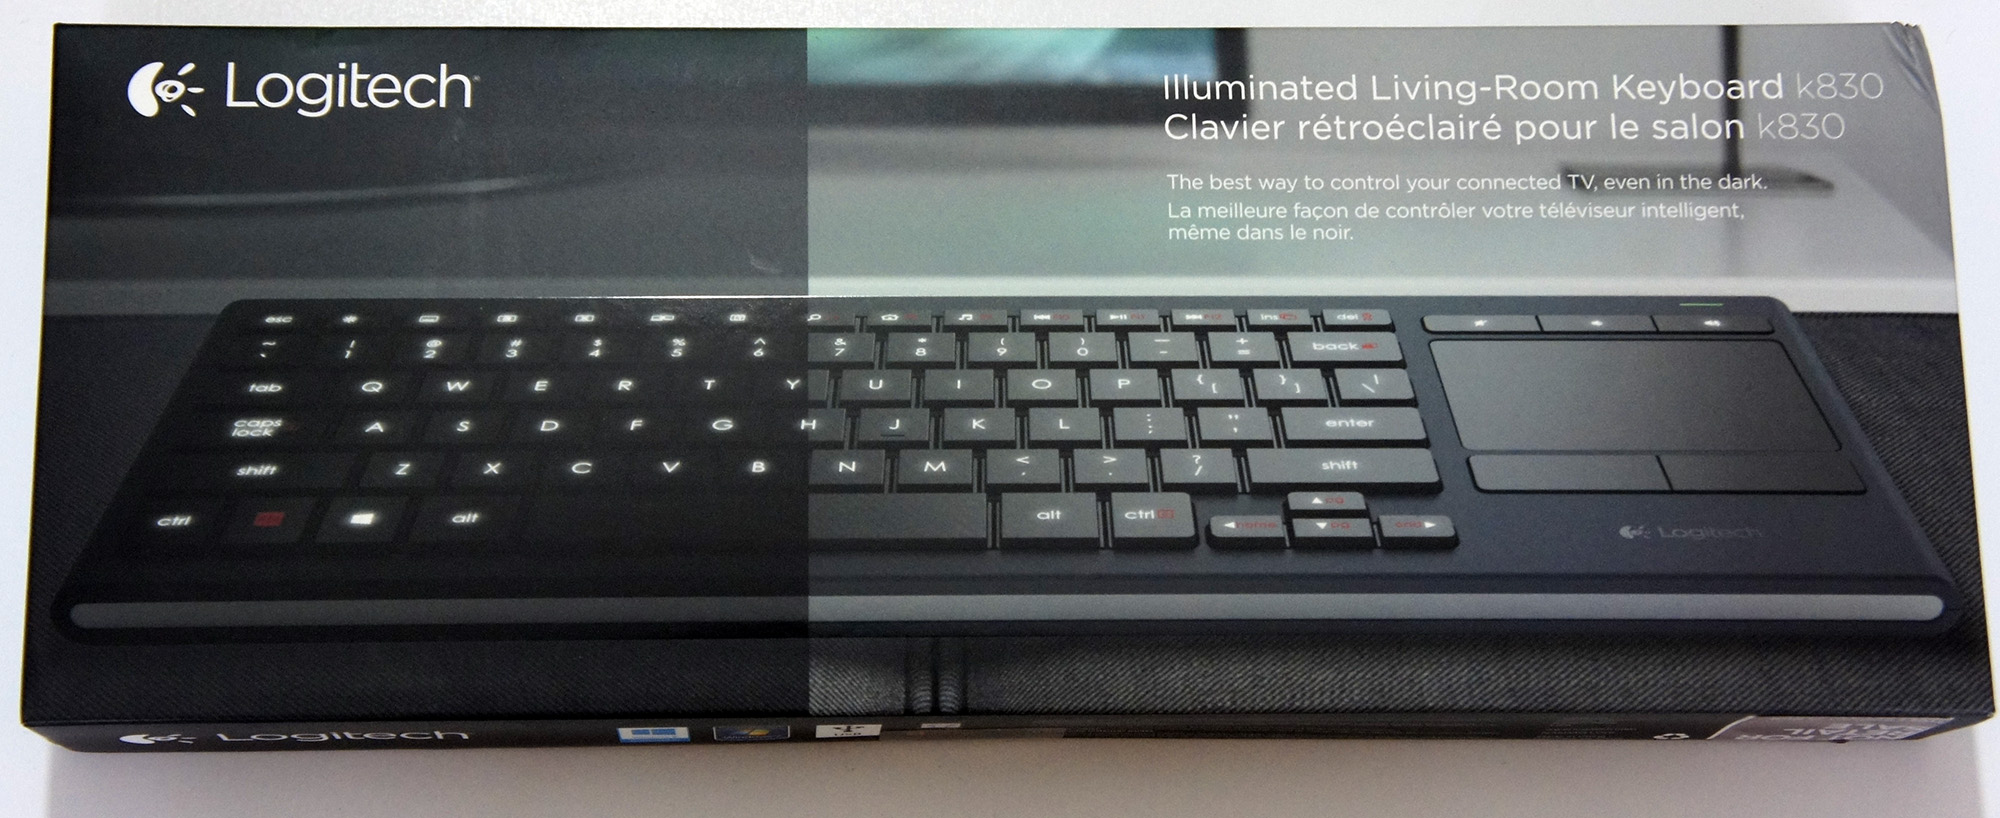 Review Logitech K830 Illuminated Living Room Wireless